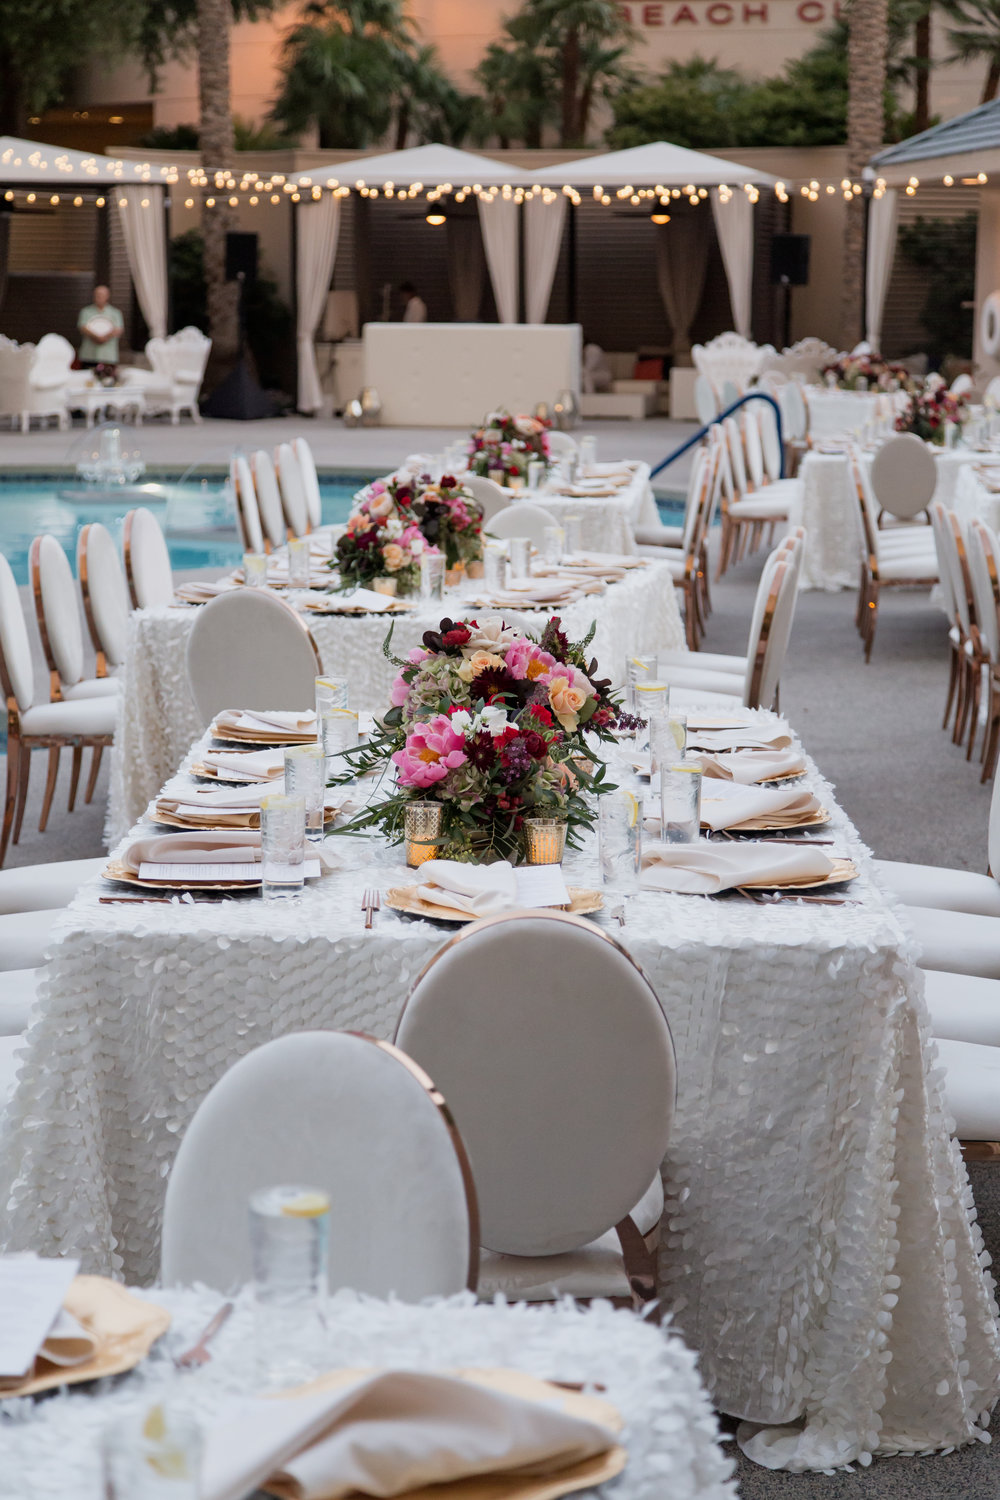 White and jewel toned pool side wedding. Destination Wedding Planner  Andrea Eppolito  · Photos by  Adam Frazier Photography  · Floral and Decor by  Destinations by Design  ·  Lighting by  LED Unplugged  · Venue  · Invitations  Ceci New York   ·  Menus by  Alligator Soup